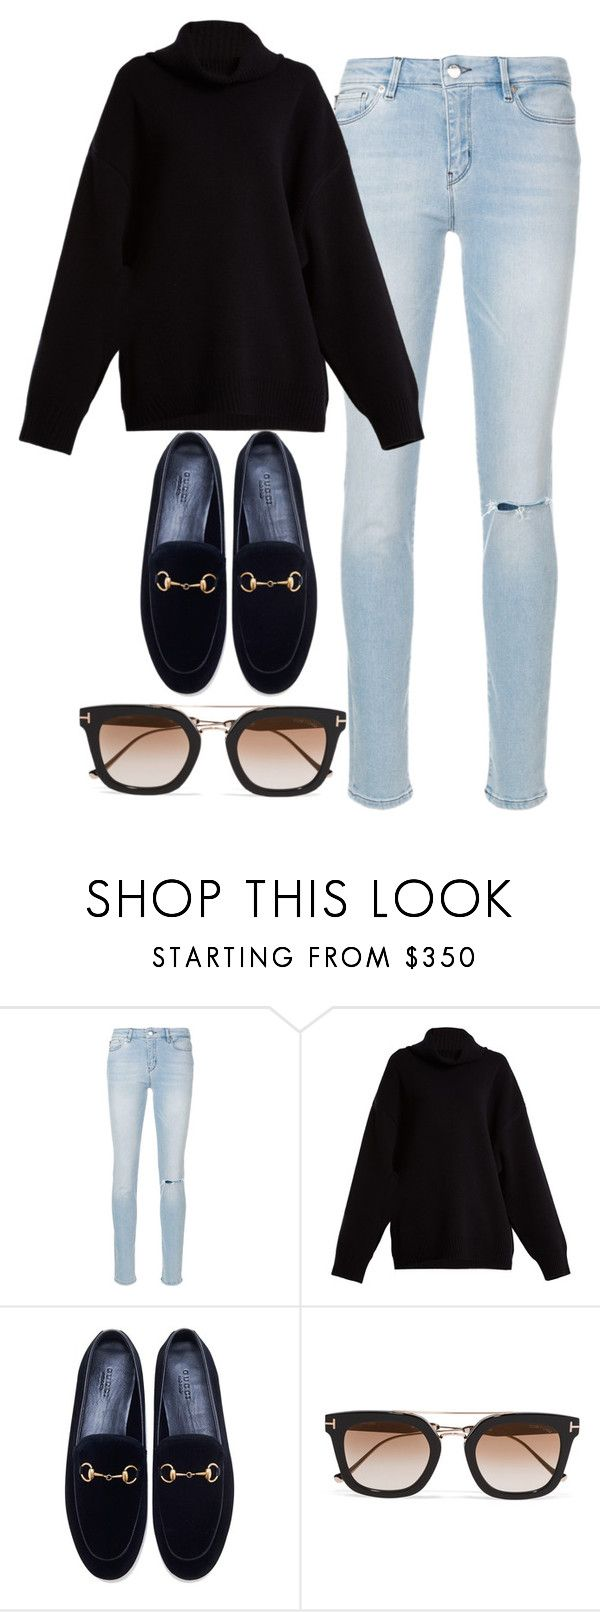 """Untitled #4679"" by dkfashion-658 on Polyvore featuring Raey, Gucci and Tom Ford"